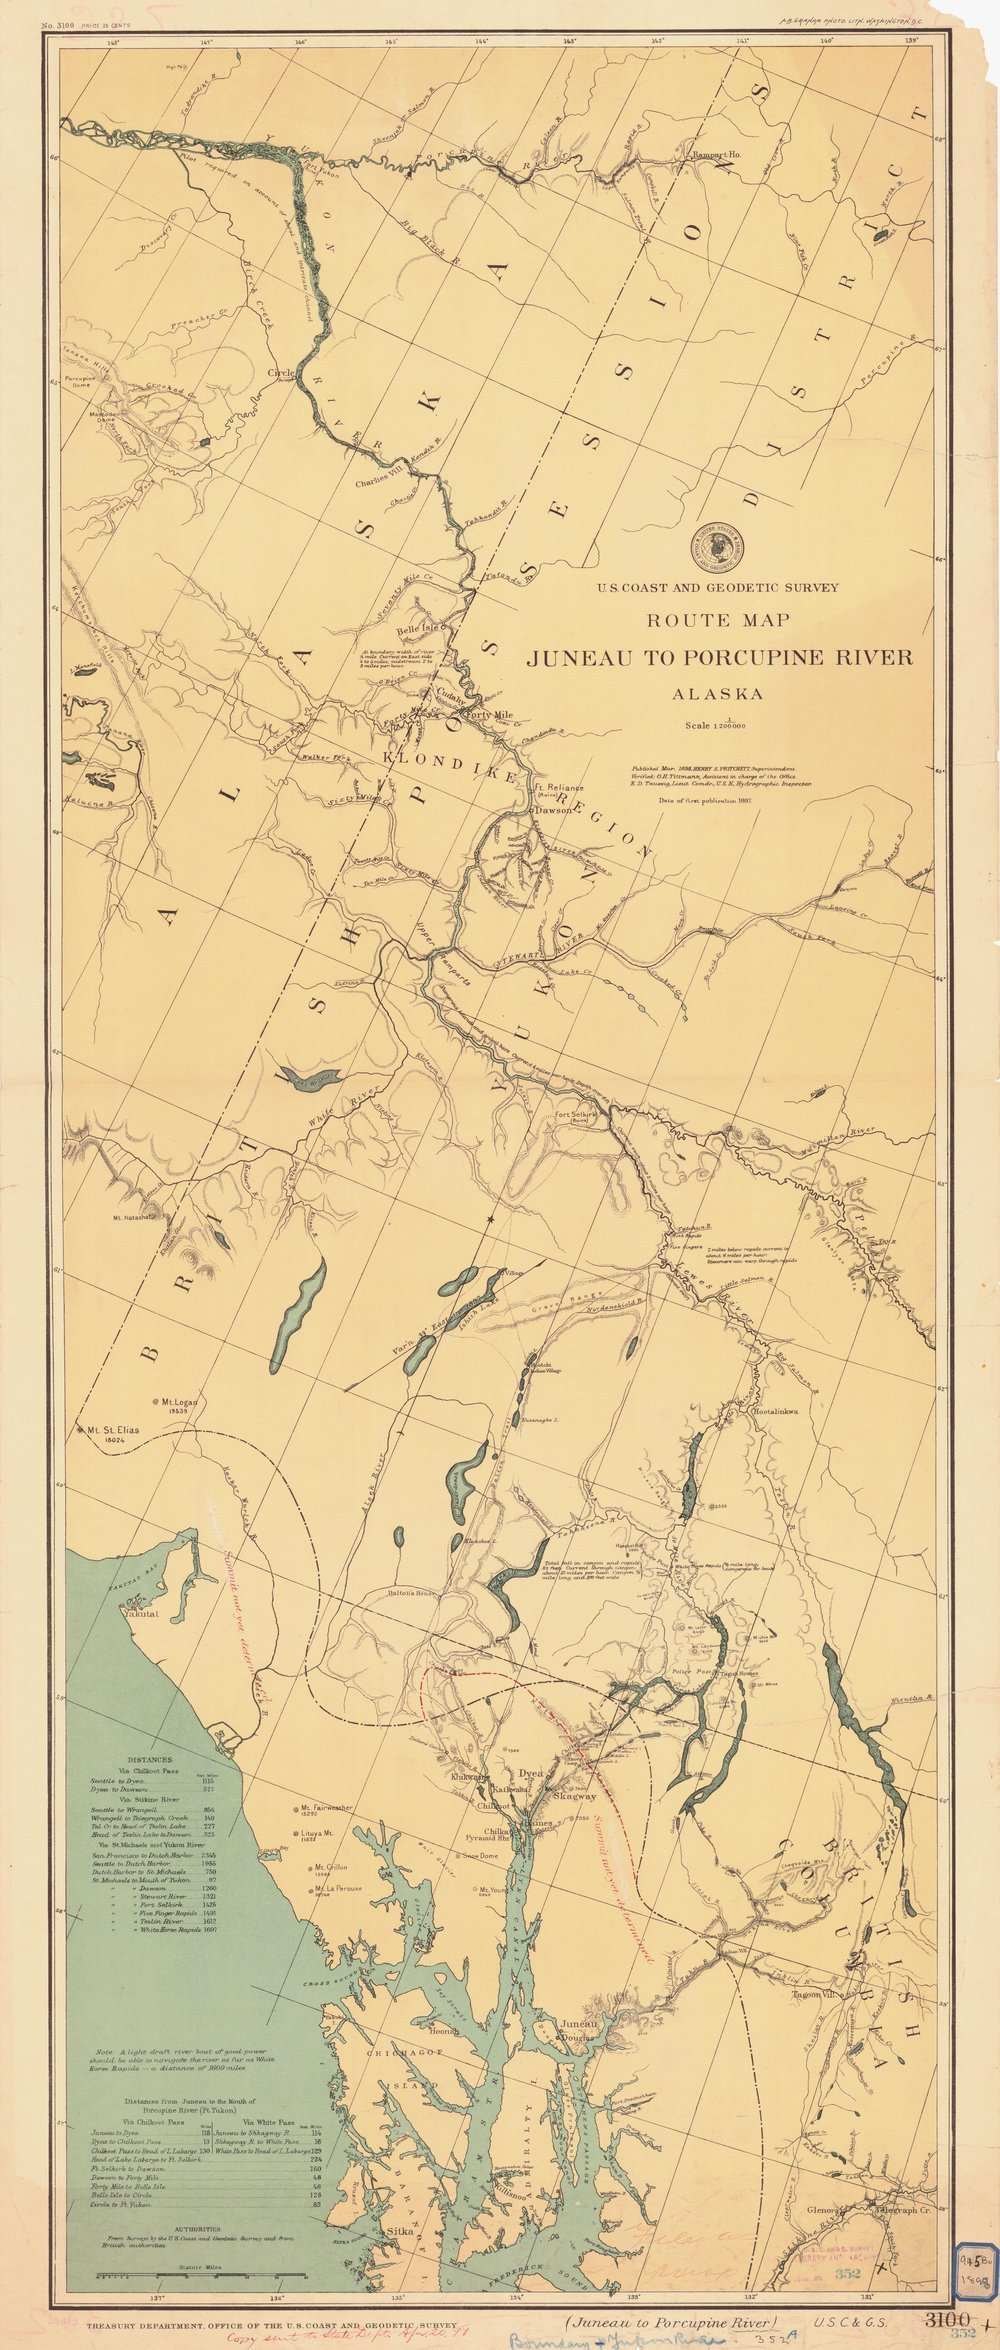 18 X 24 Inch 1897 Us Old Nautical Map Drawing Chart Of Juneau To - Us-coast-and-geodetic-survey-maps